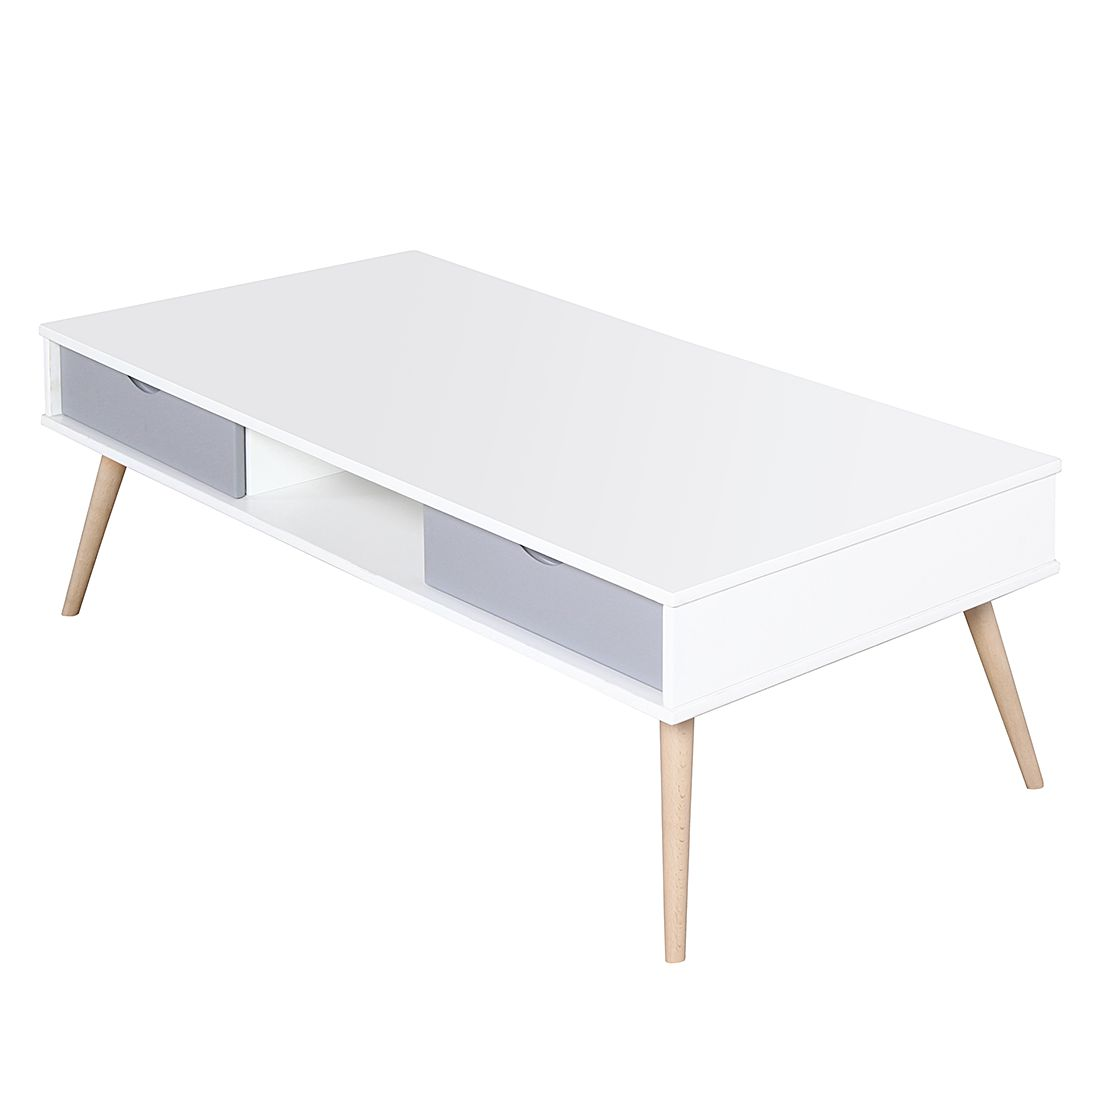 Table basse Stan - Blanc / Gris, Morteens